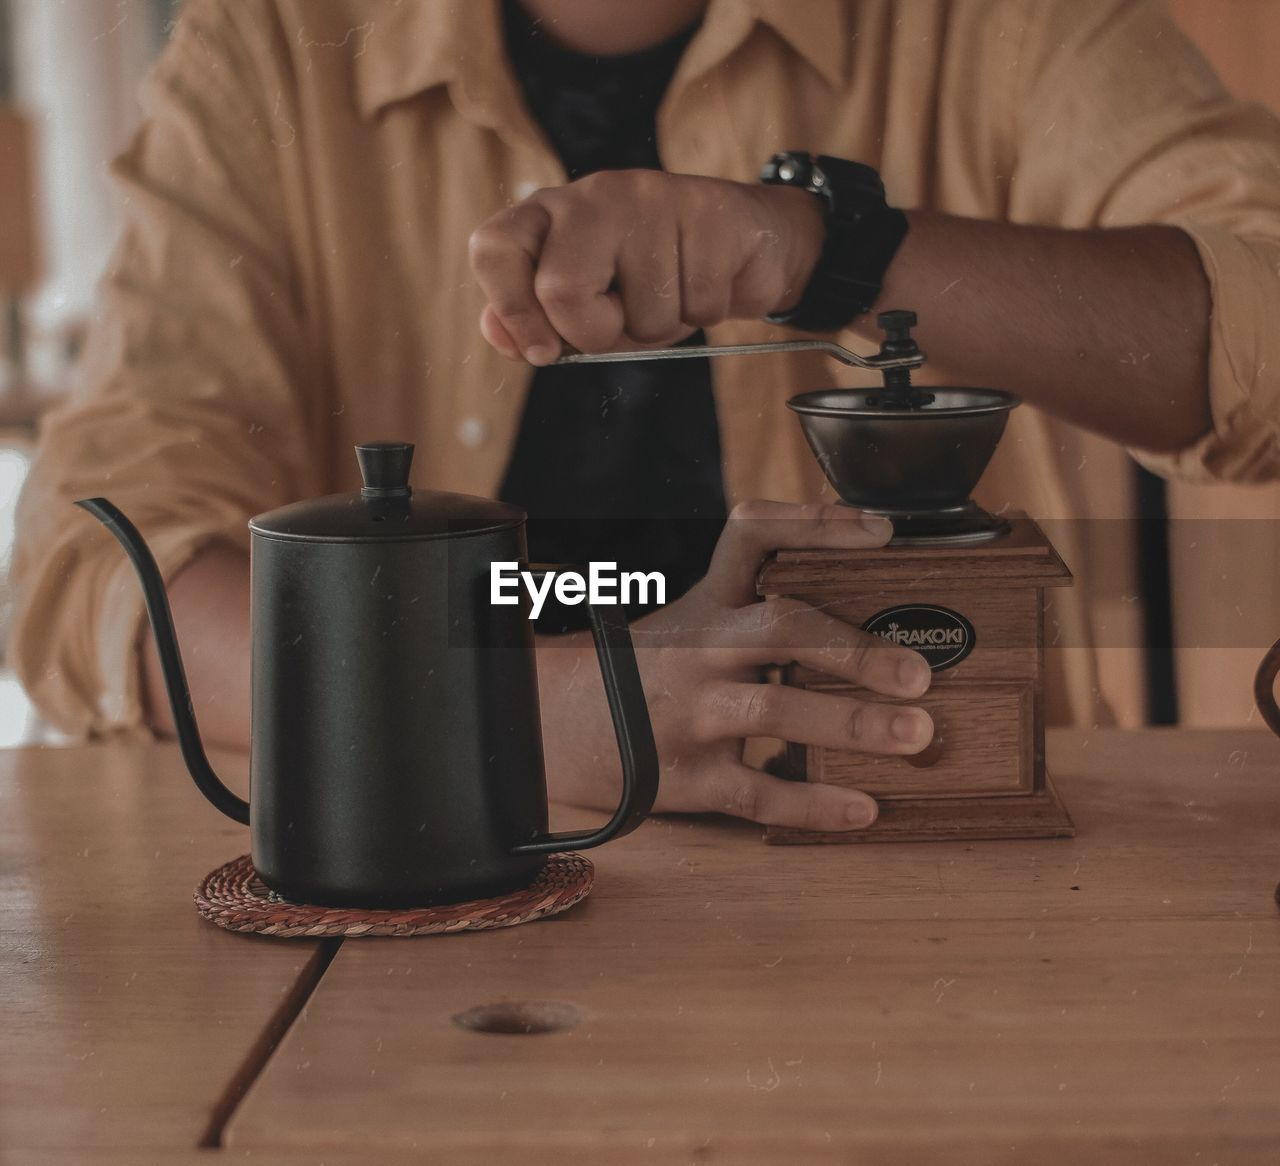 CLOSE-UP OF COFFEE CUP ON TABLE WITH TEXT